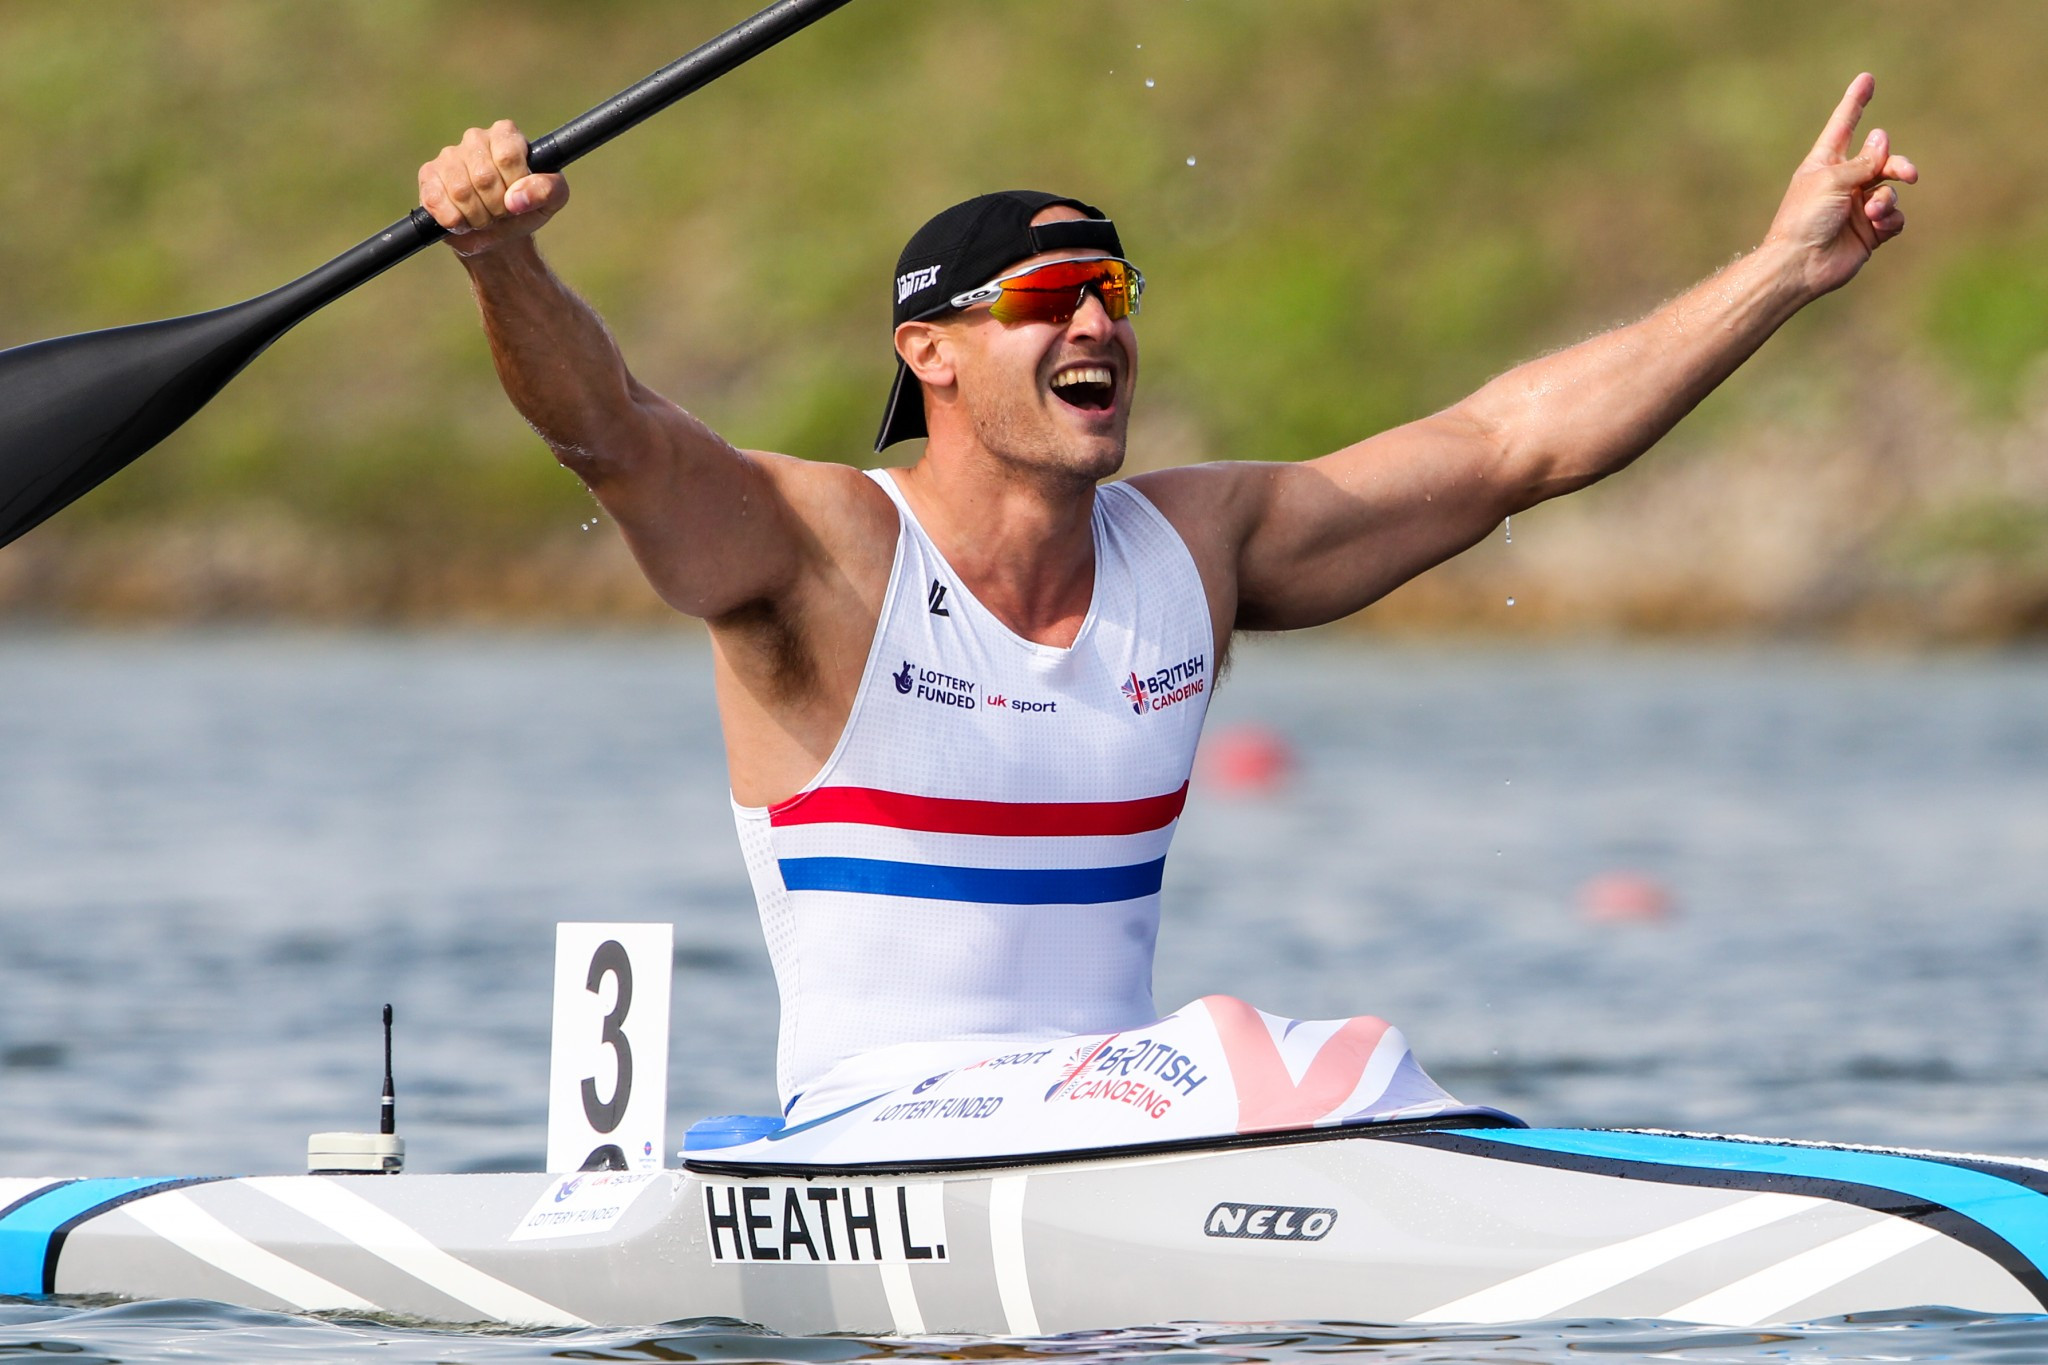 Heath completes clean sweep of major titles at ICF Canoe Sprint World Championships